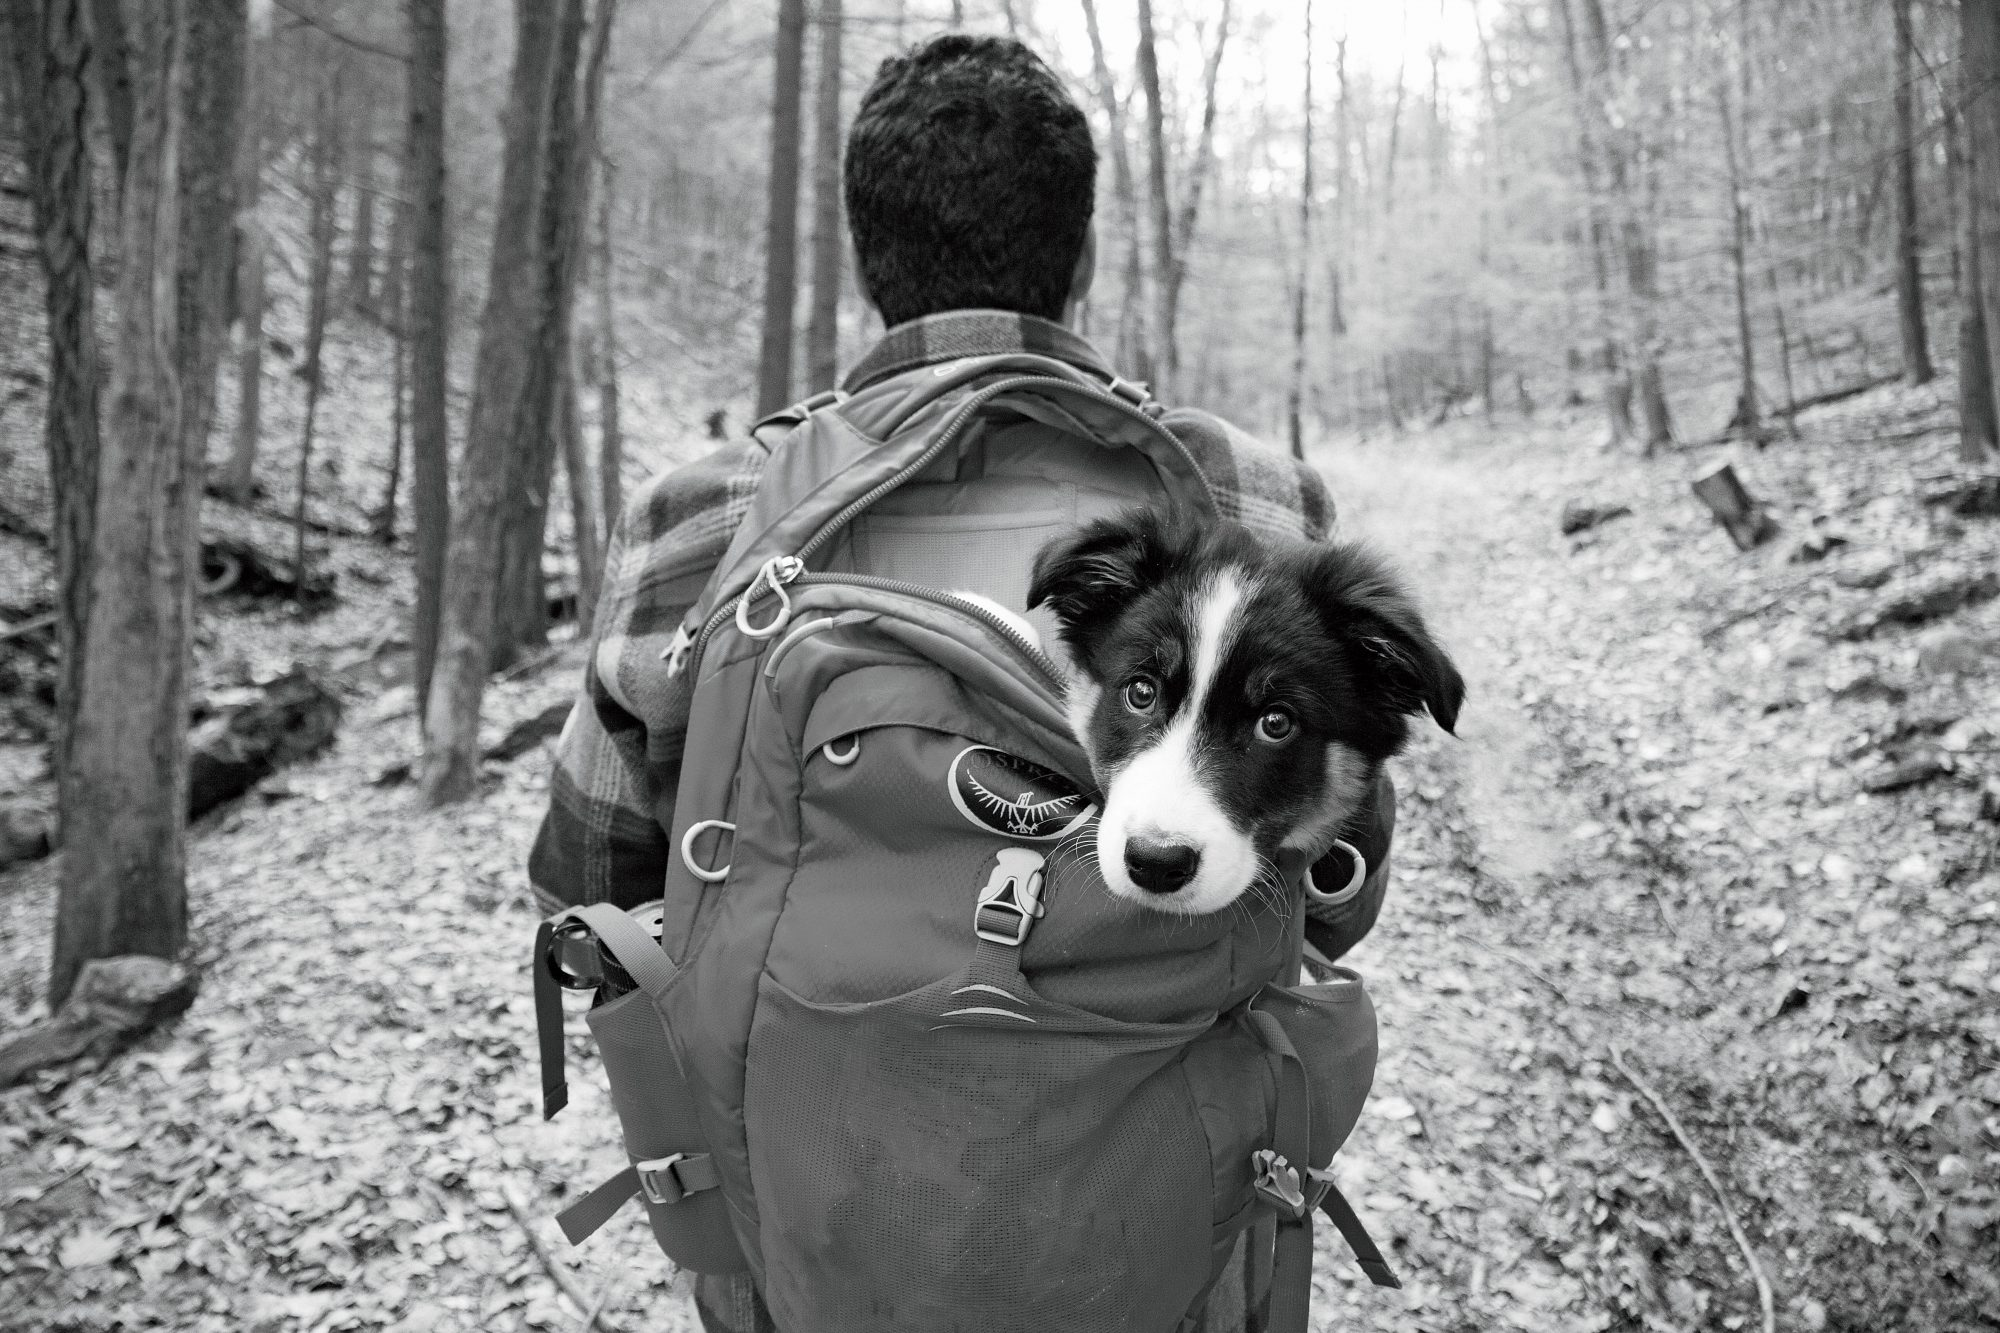 Hiking with Dog in Backpack